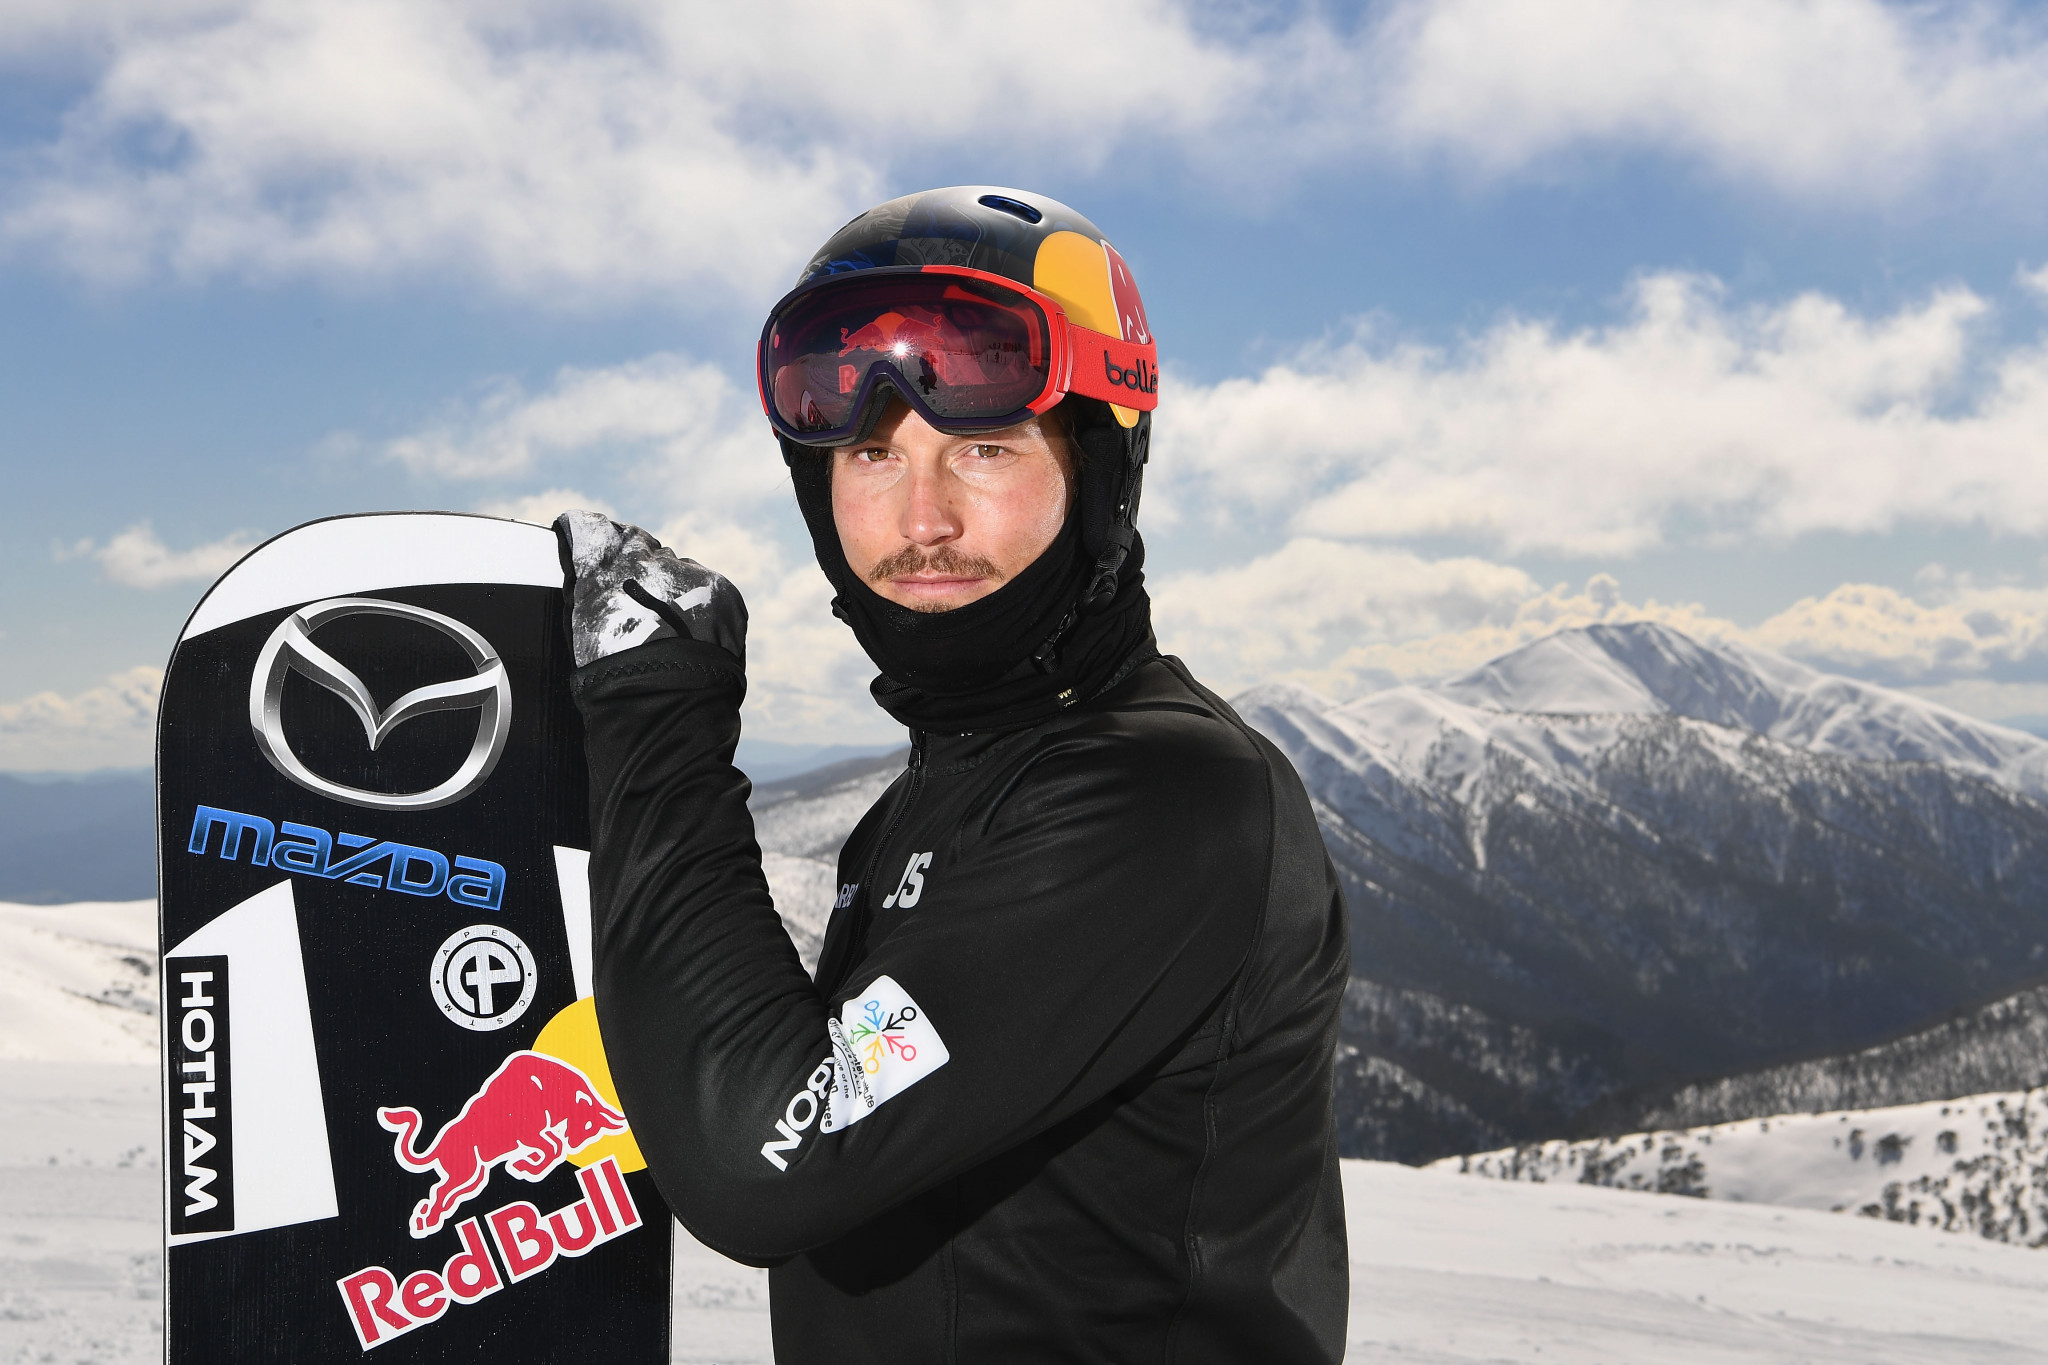 Tributes paid after tragic death of two-time world champion snowboarder Pullin